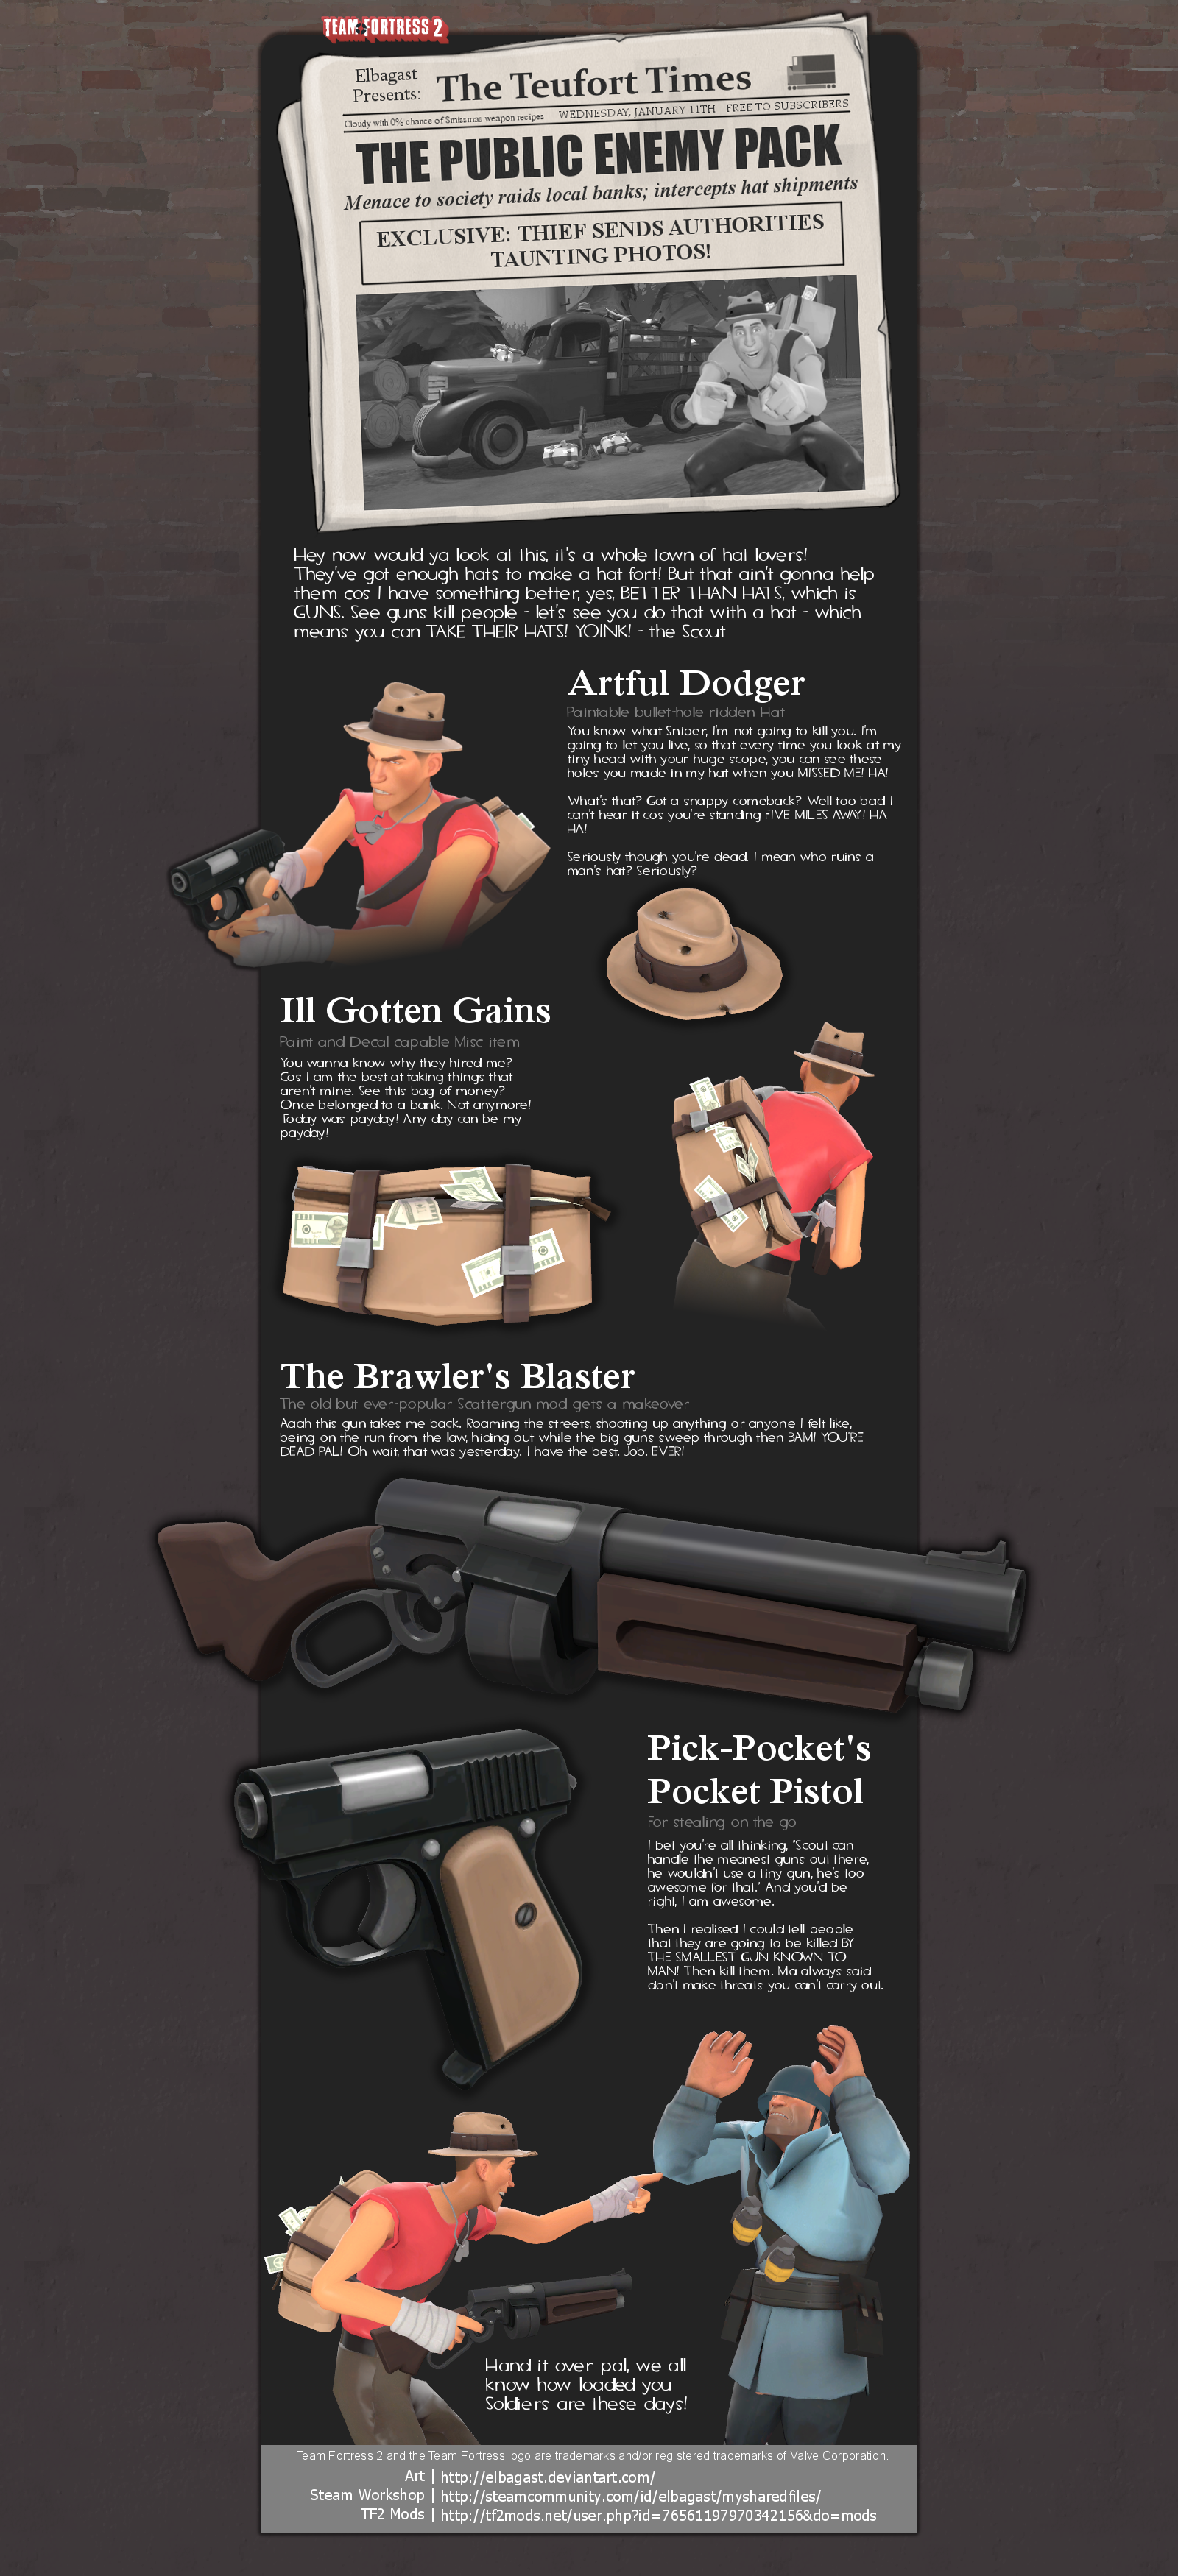 The Public Enemy Pack by Elbagast